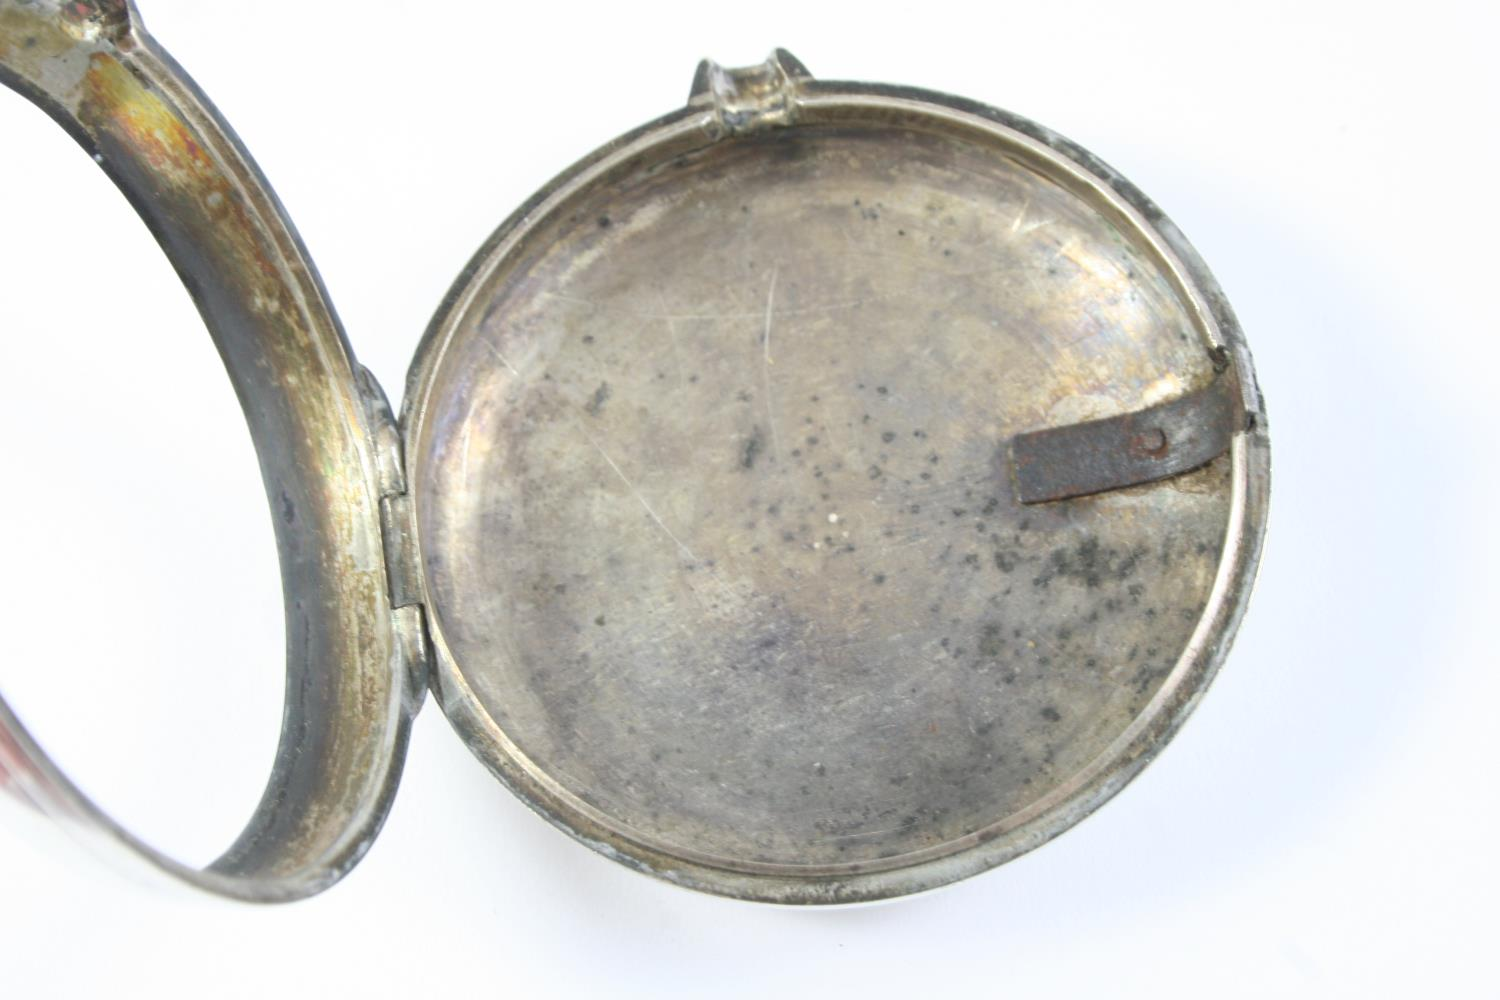 A SILVER PAIR CASED VERGE POCKET WATCH the white enamel dial with Roman numerals, the movement - Image 5 of 6